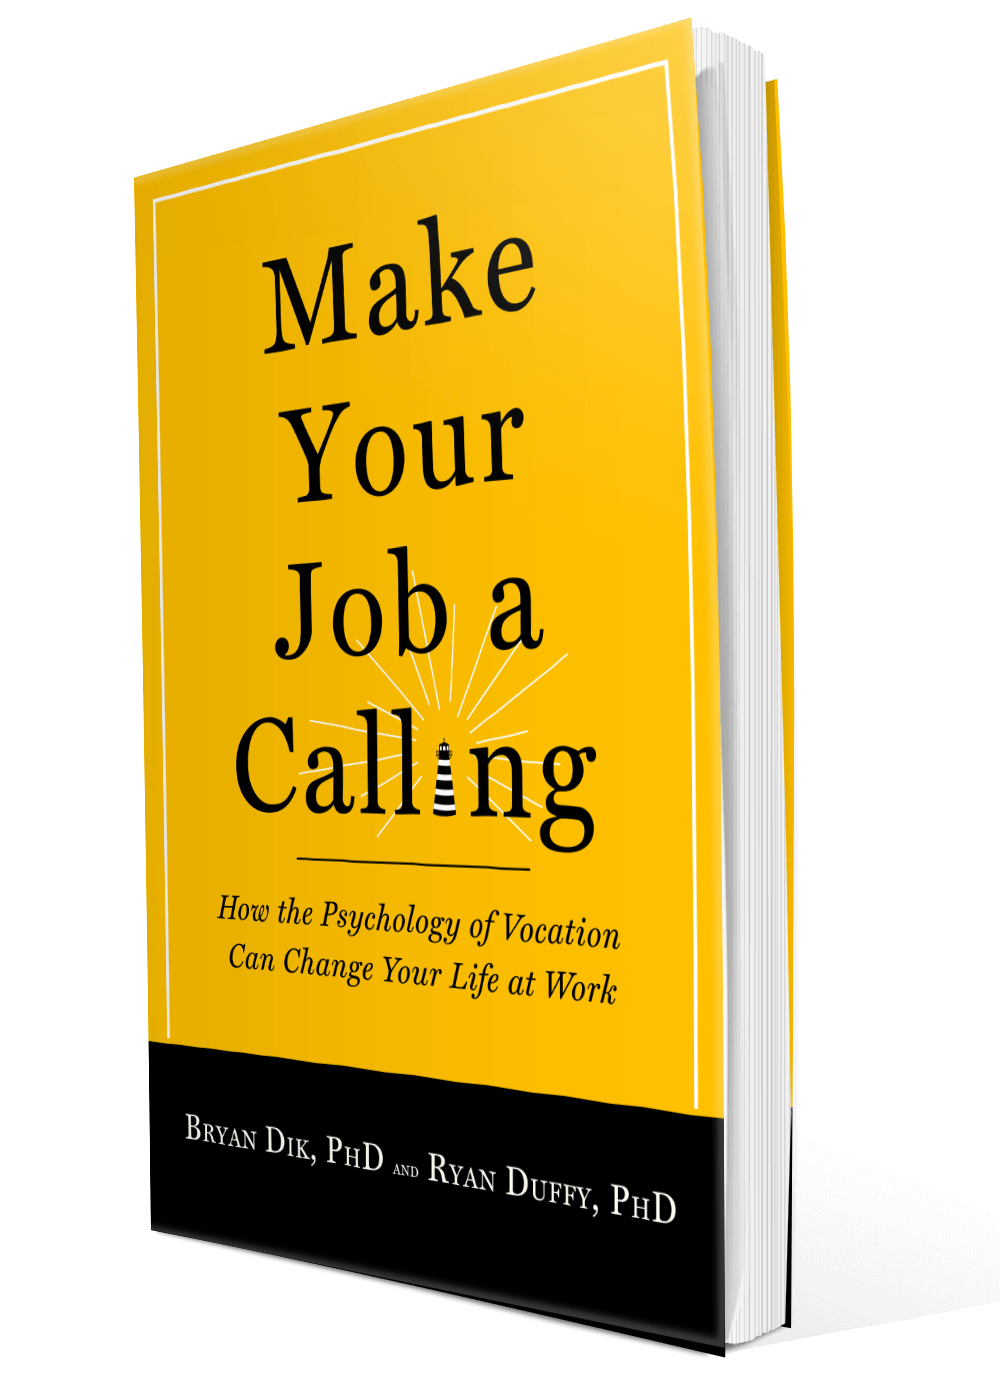 a call to work purposefully spark the calvin college magazine make your job a calling how the psychology of vocation can change your life at